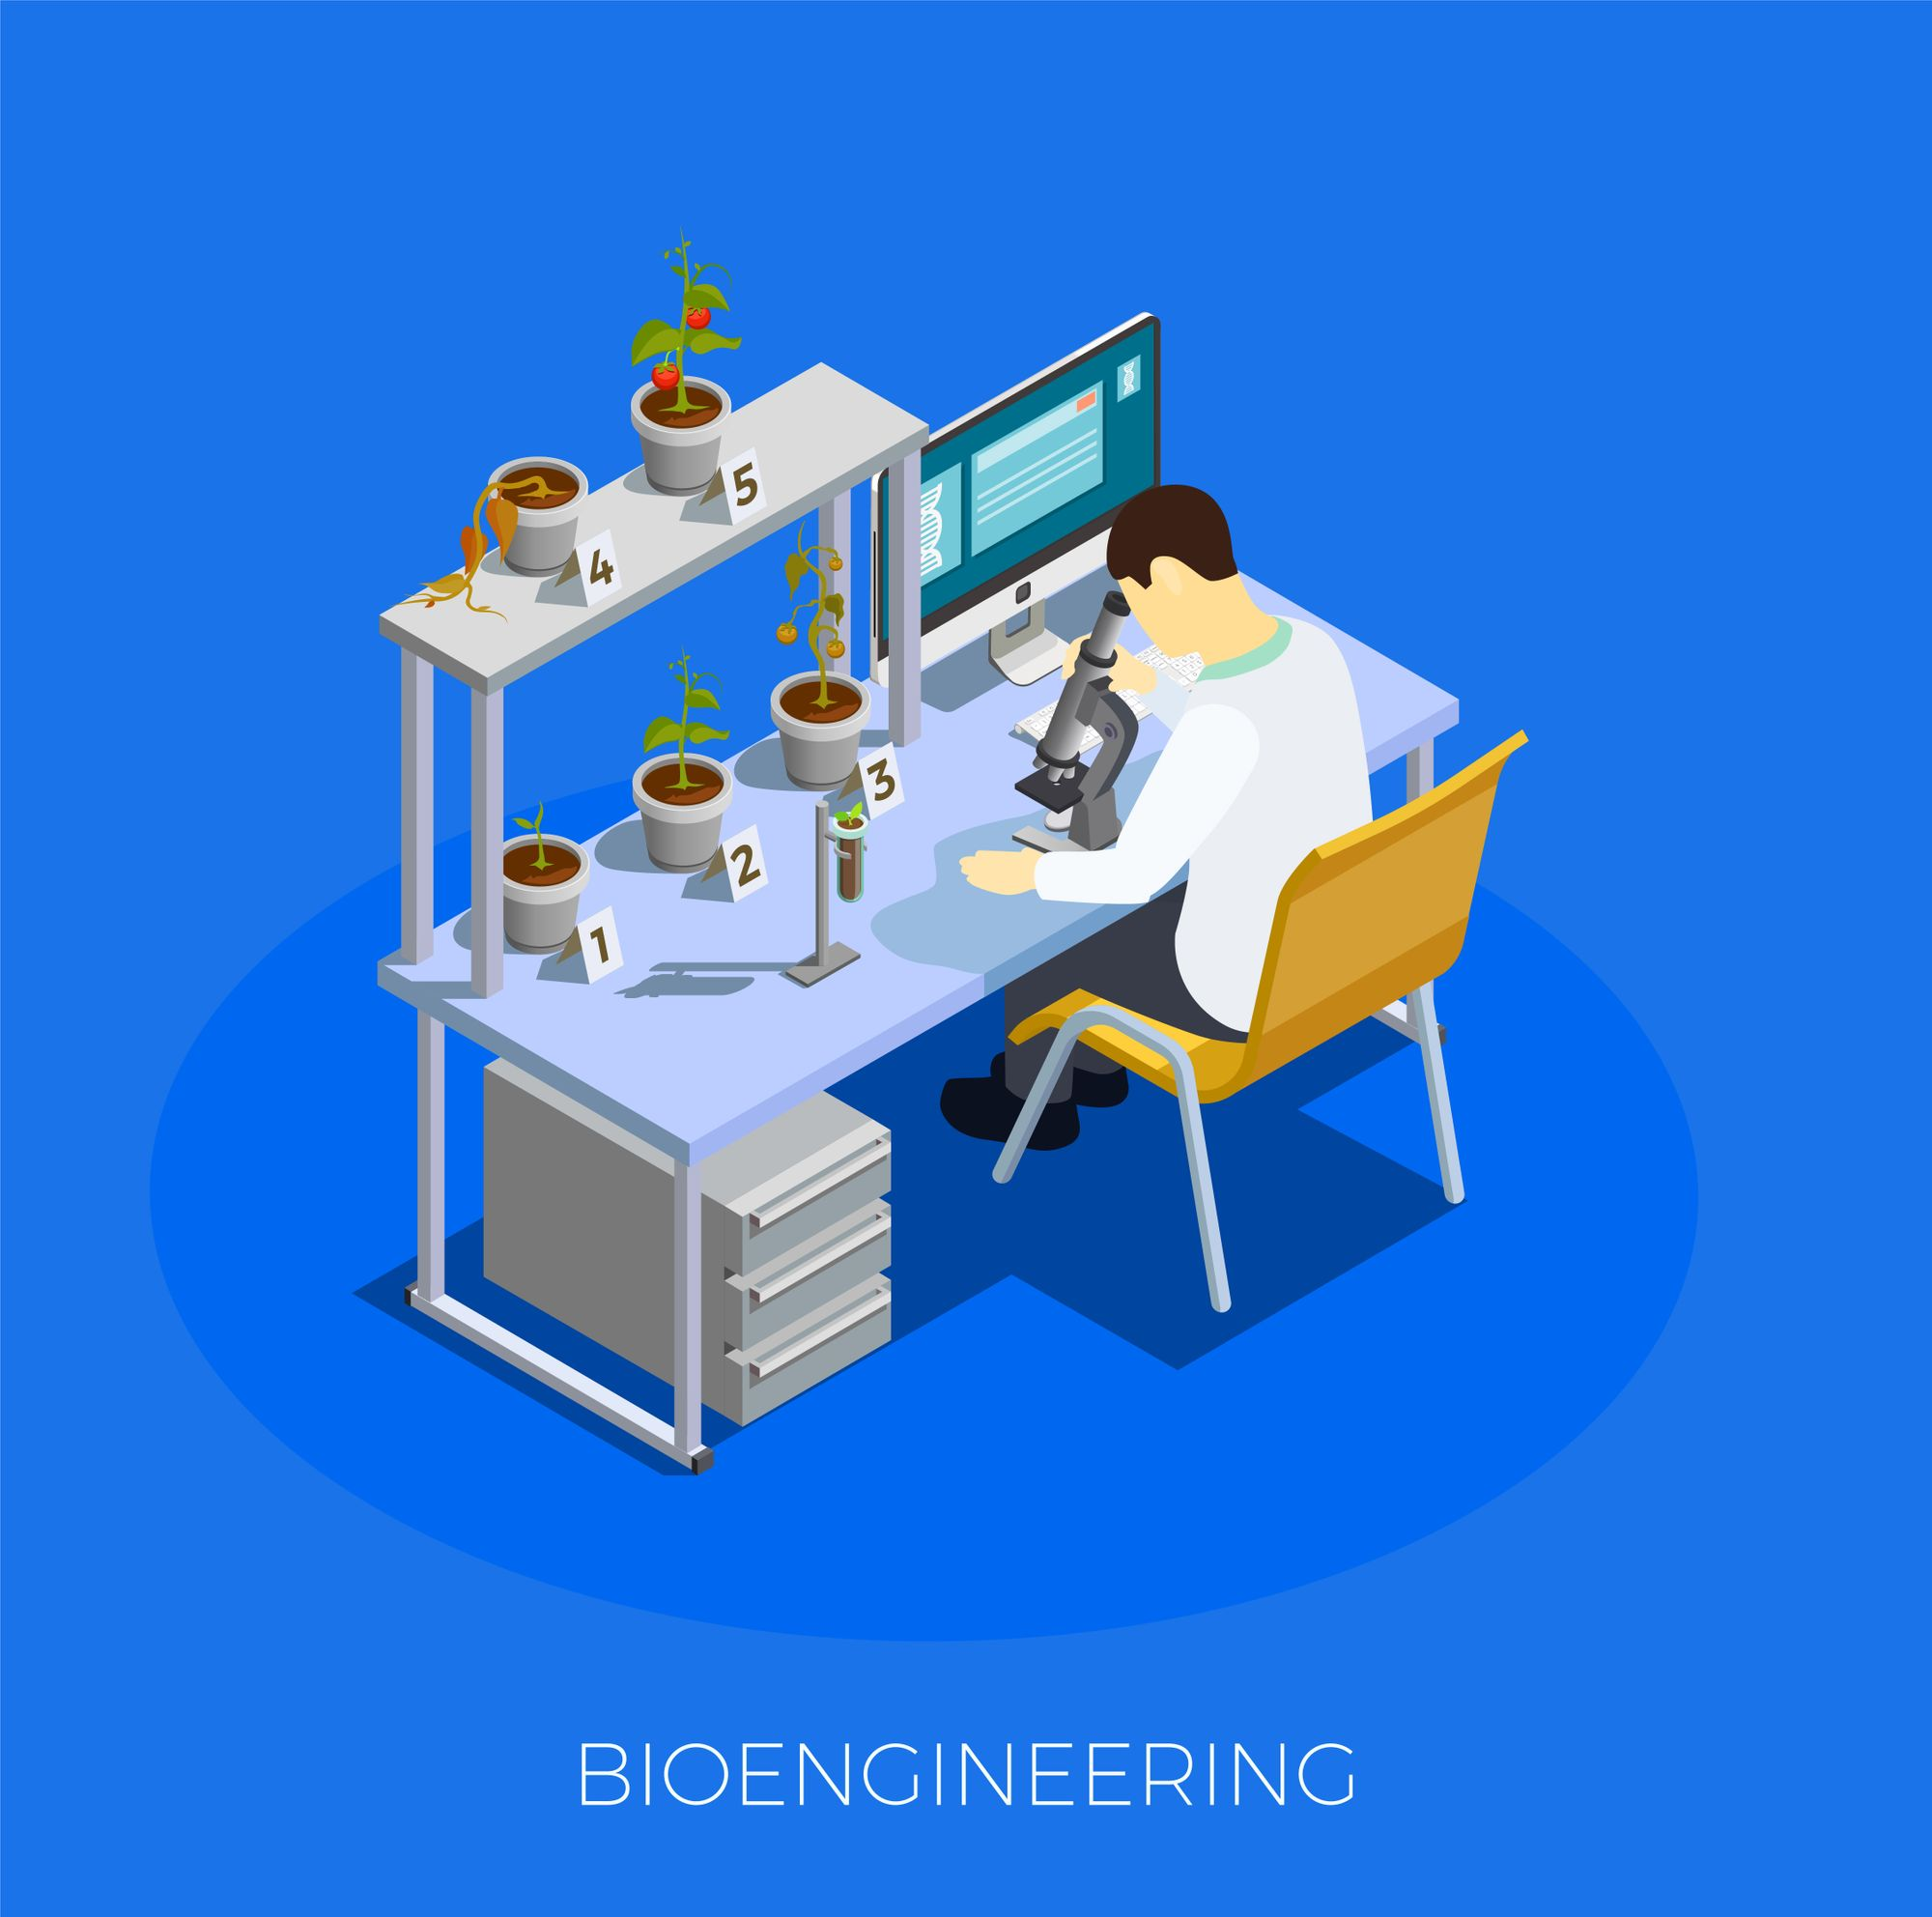 Why is Bioengineering crucial for the future?